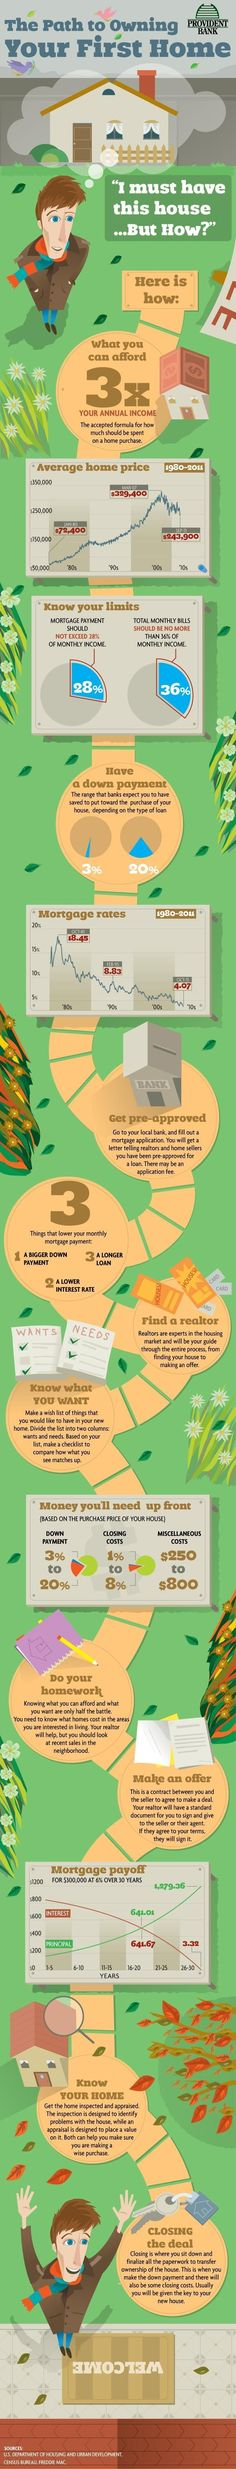 First time home buyer infographic